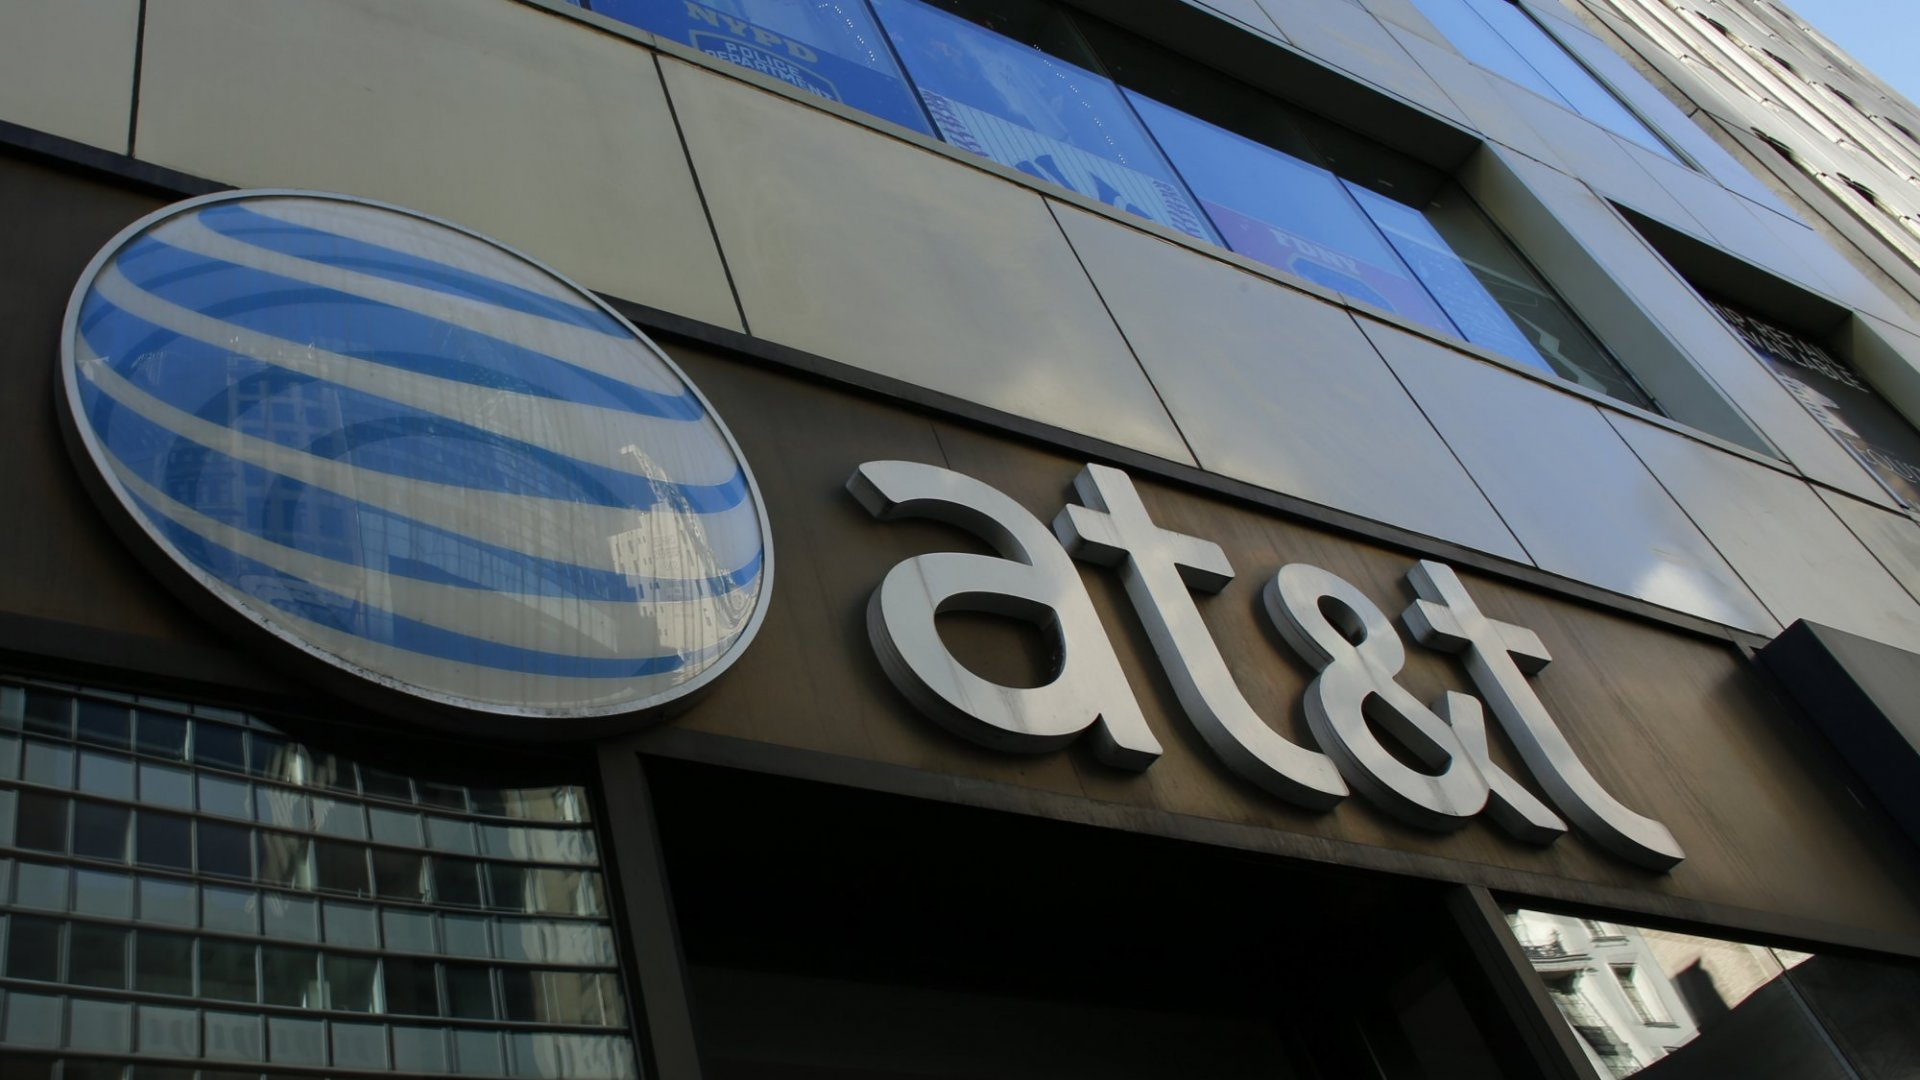 With 1 Eye-Opening Tweet, AT&T Offered aPerfectly RidiculousResponse to a SeriousAccusation